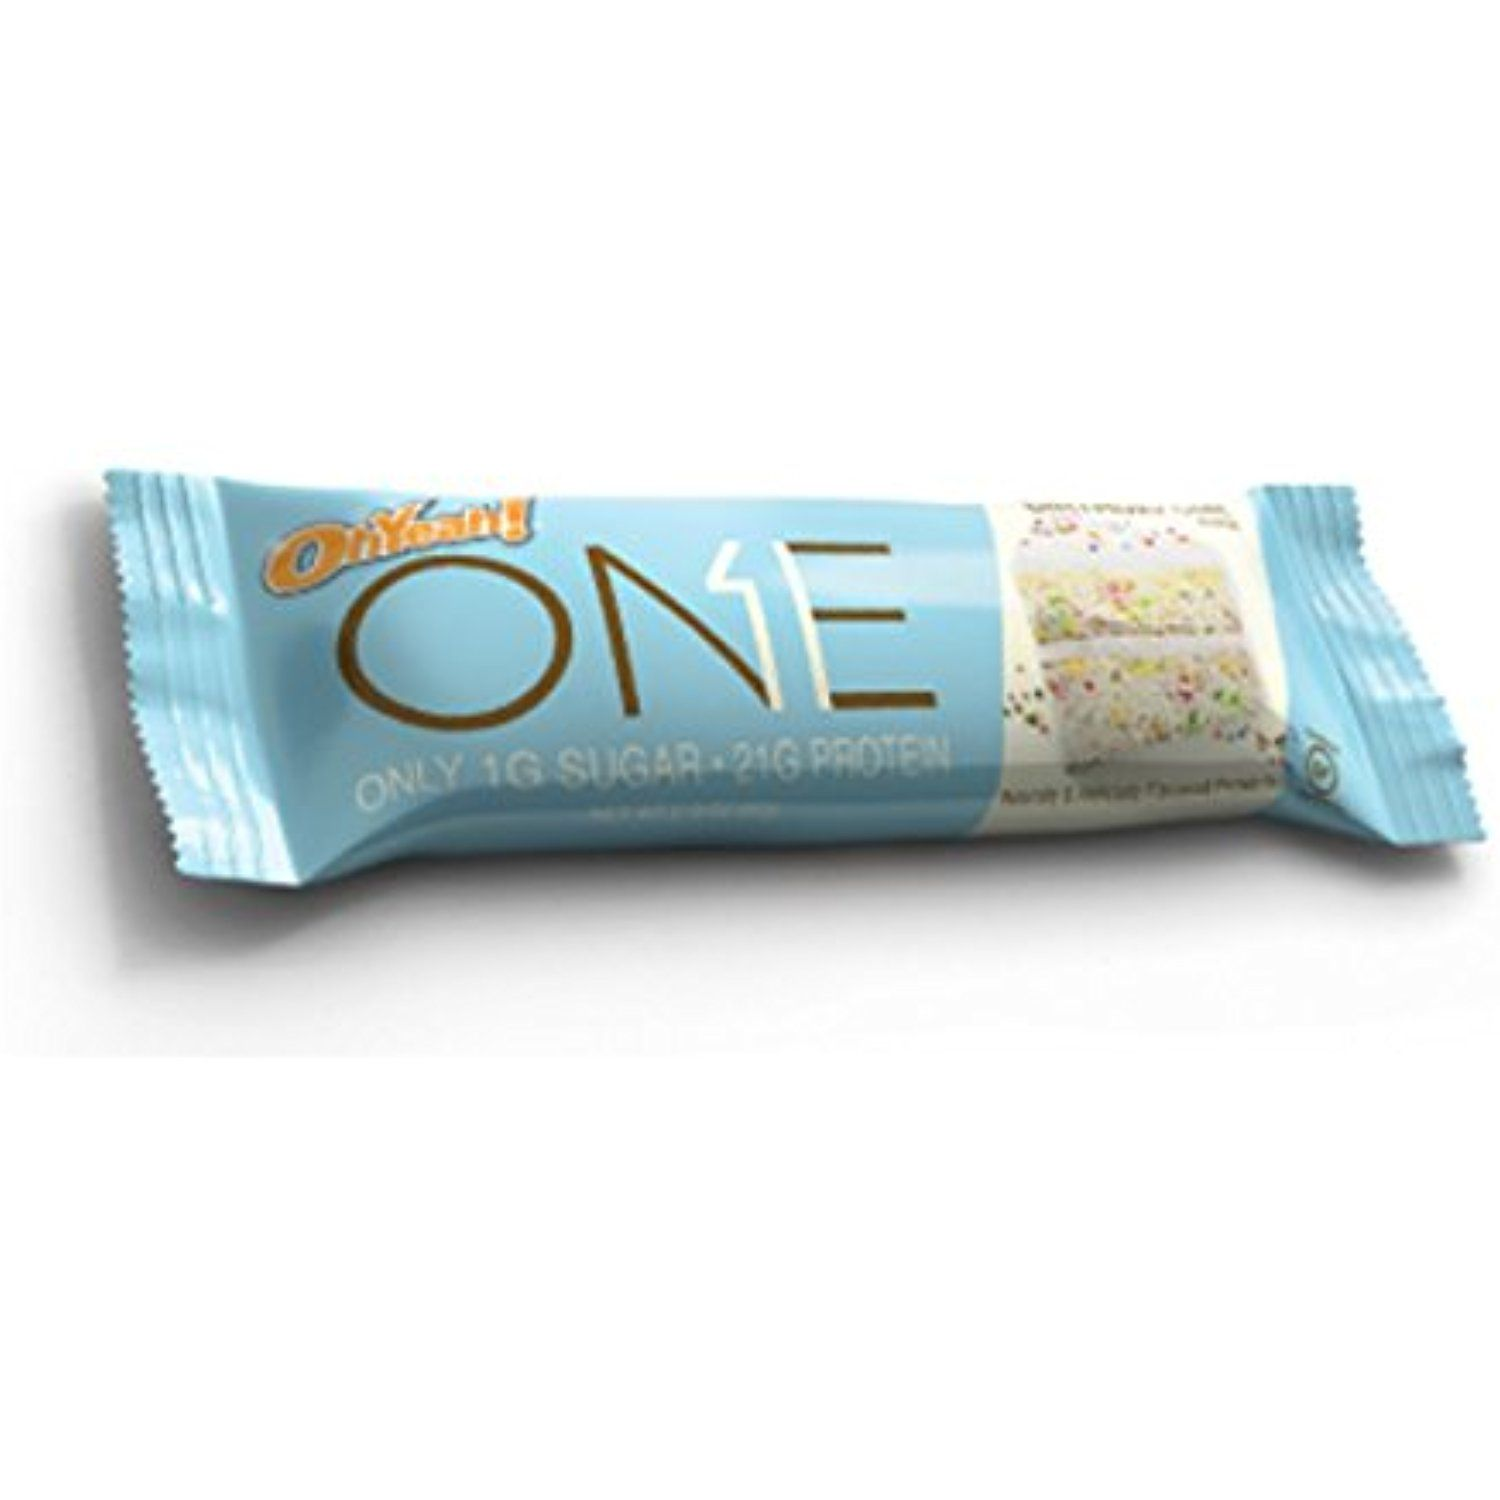 Oh Yeah One Bar Birthday Cake 1 212 Oz You Can Find More Details By Visiting The Image Link This Is An Affiliate SportsNutrition